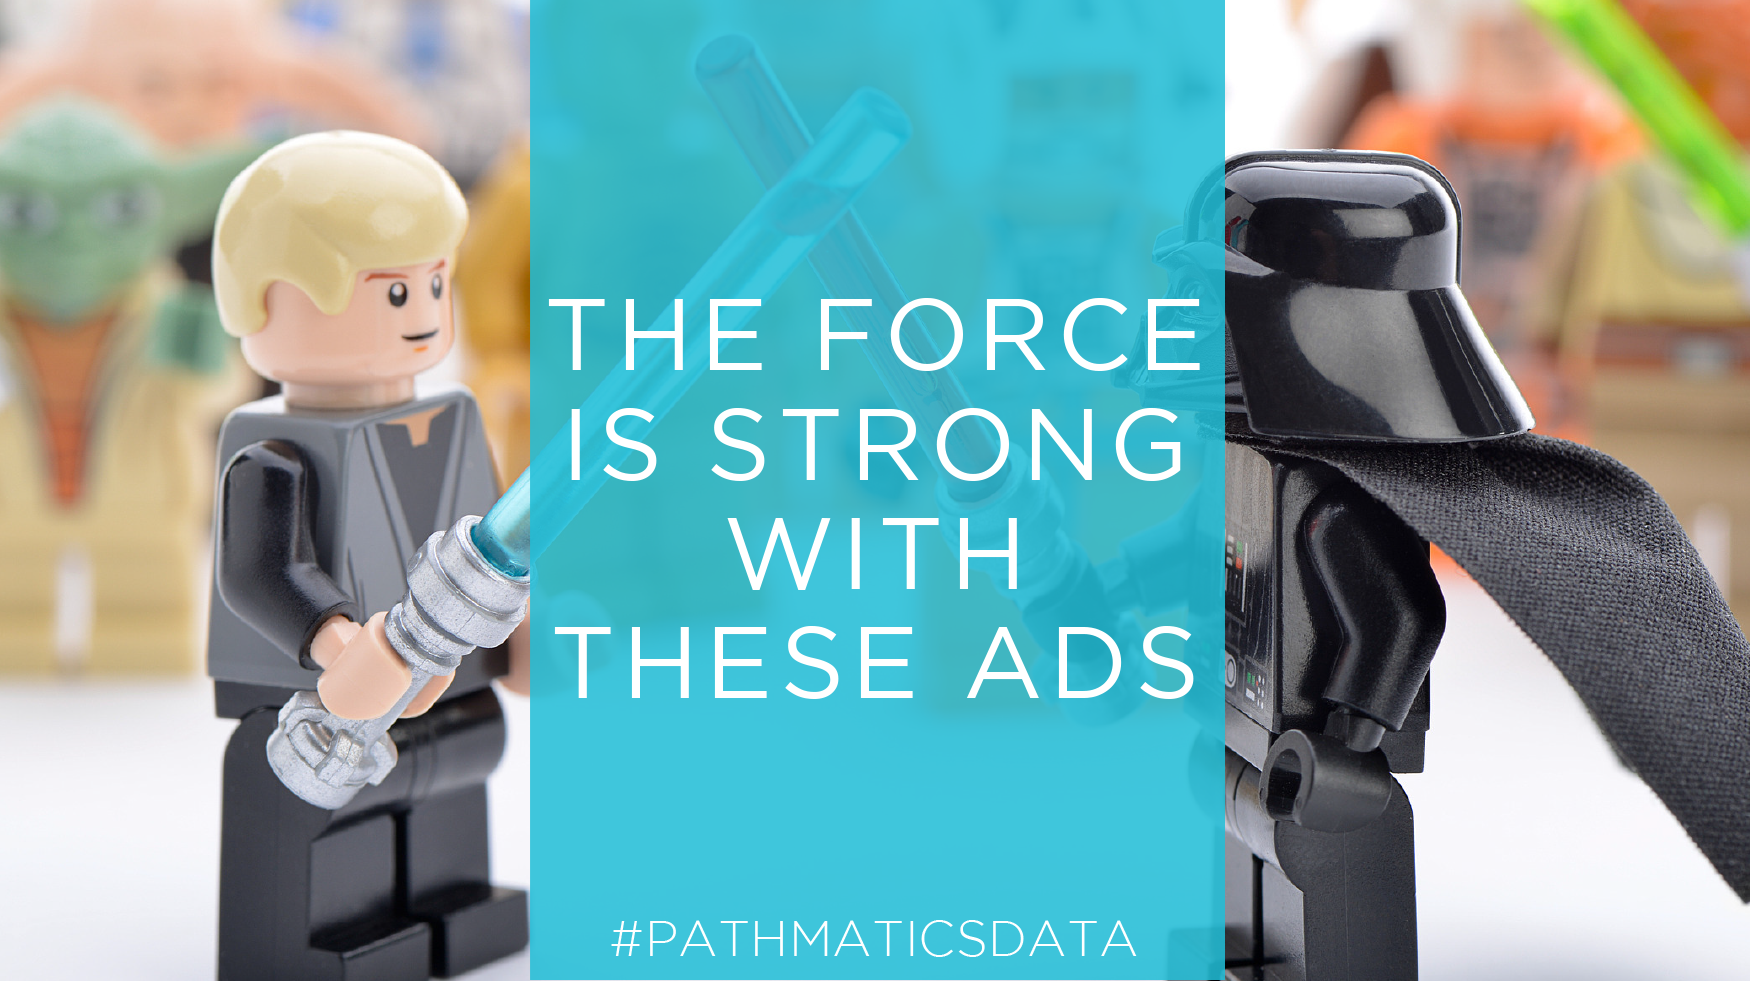 The Force is Strong With These Ads - Featured Image